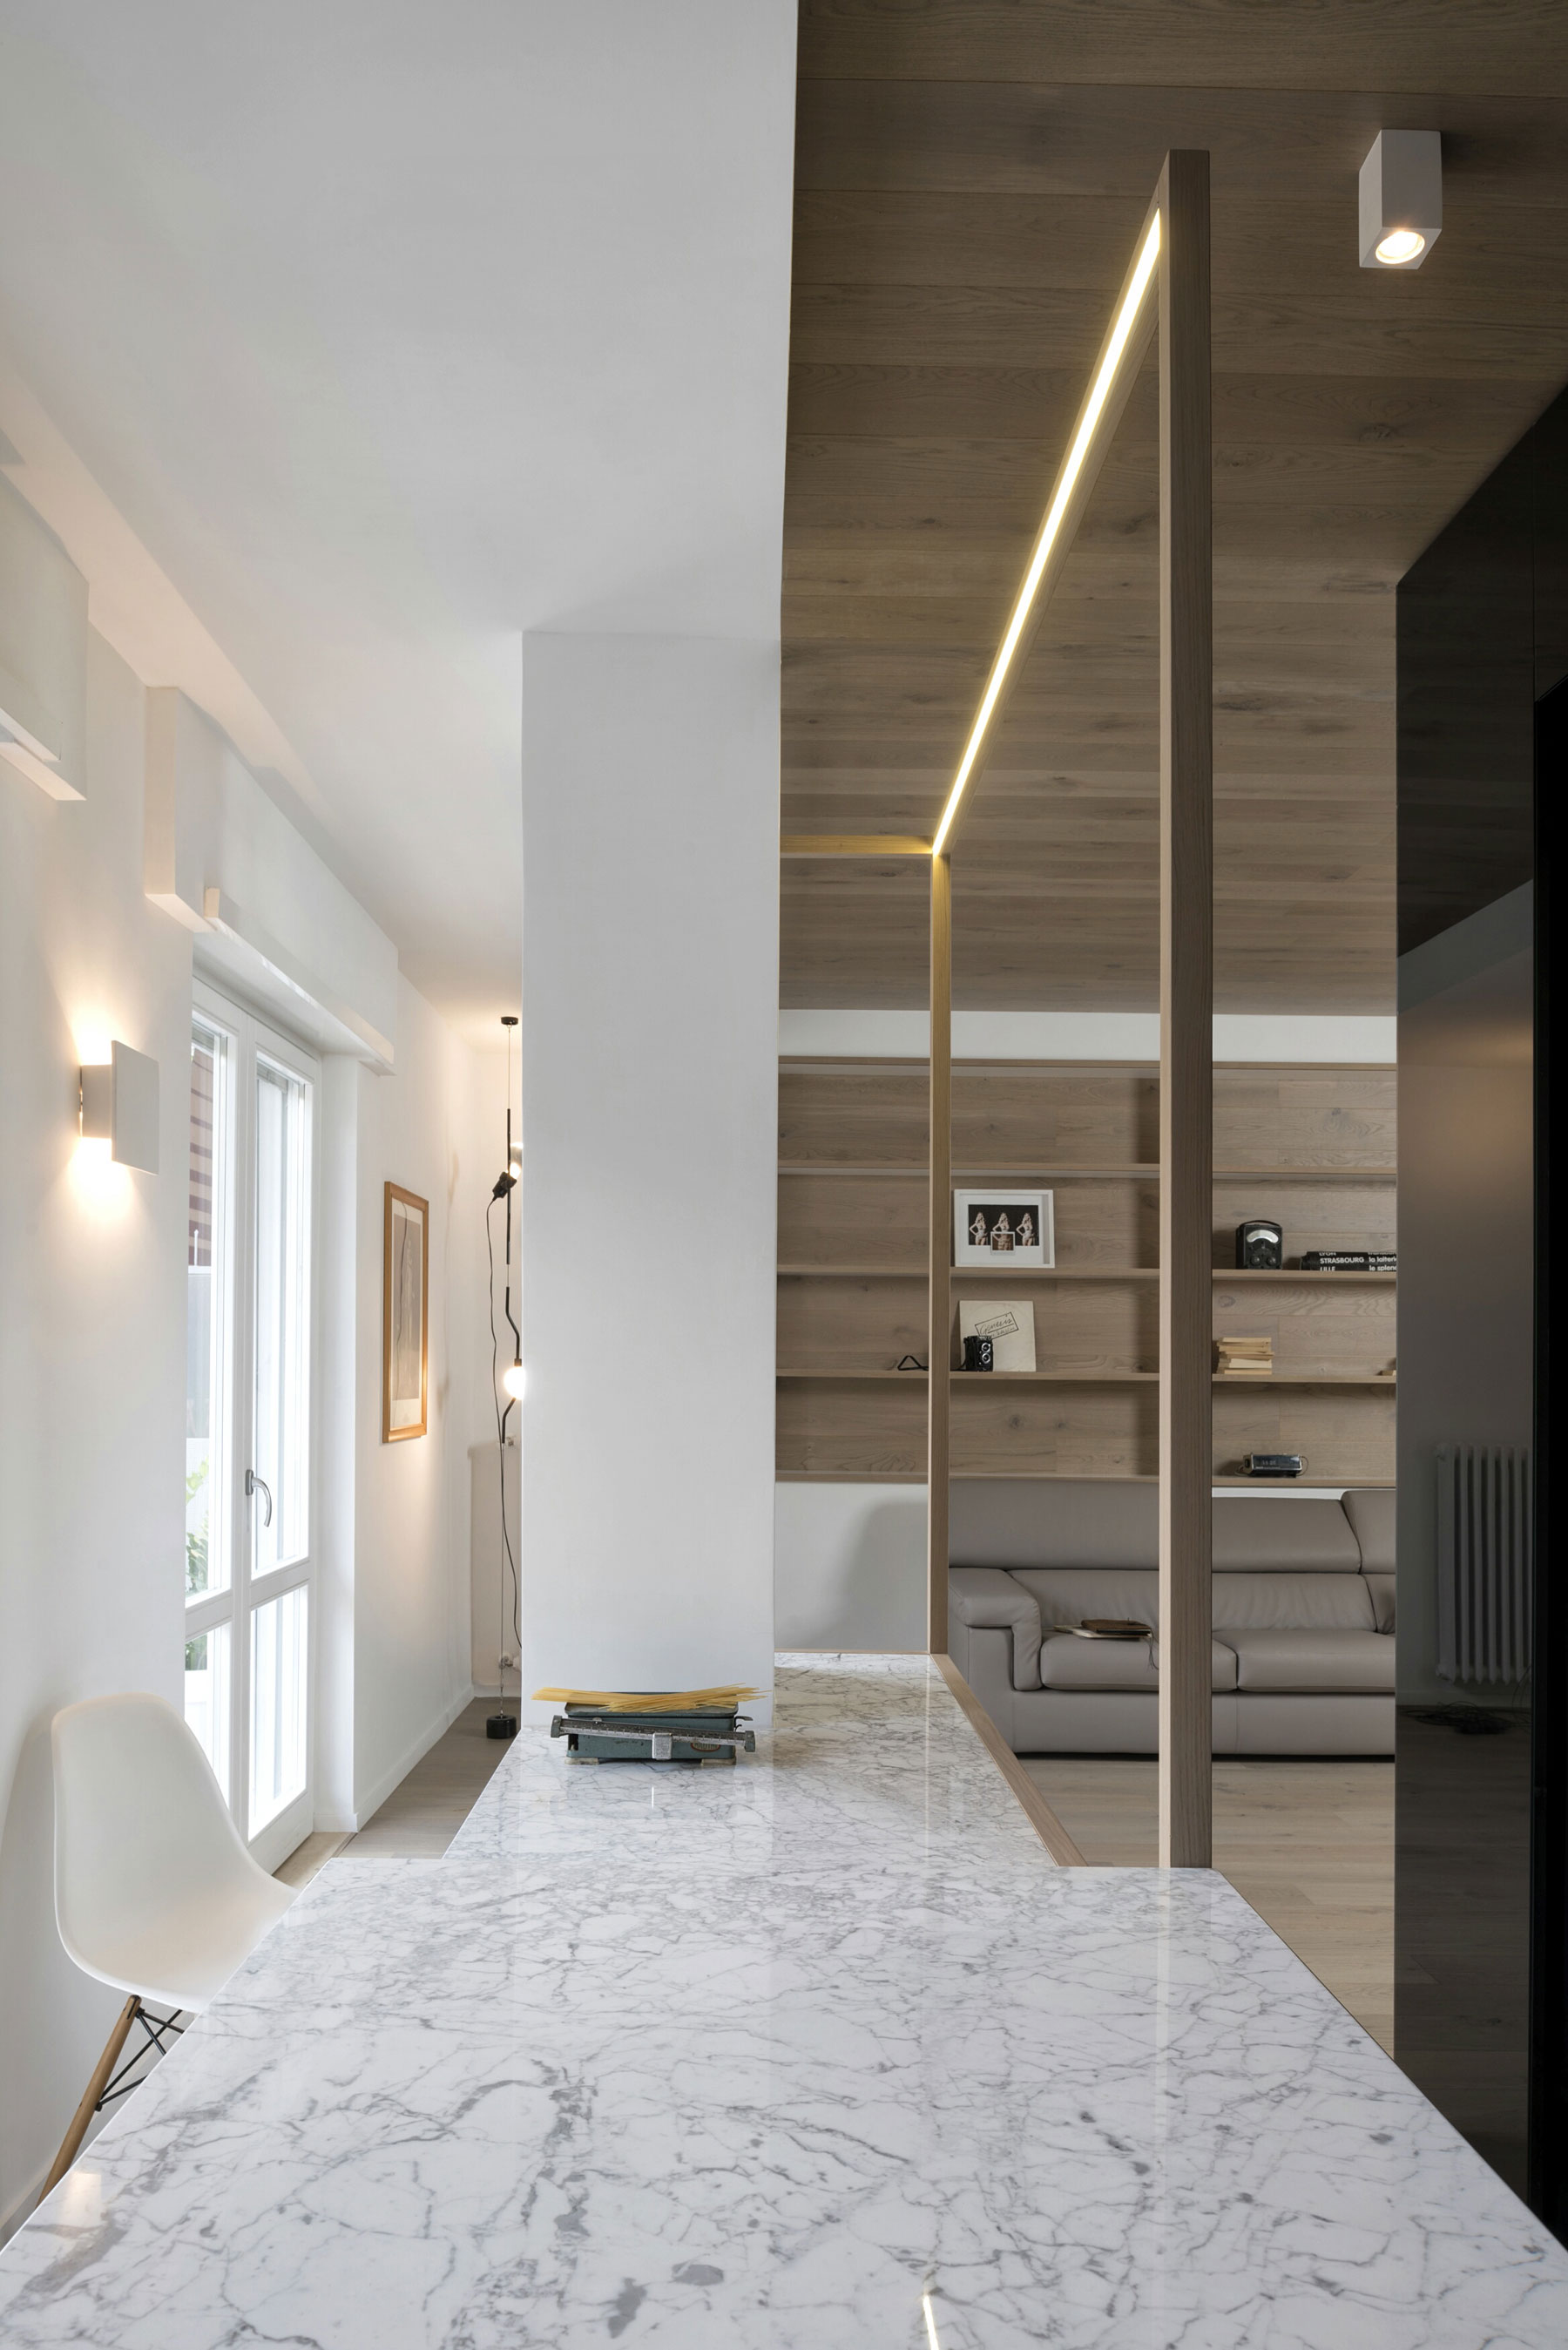 The Cube Apartment in Rome by Noses Architects-10